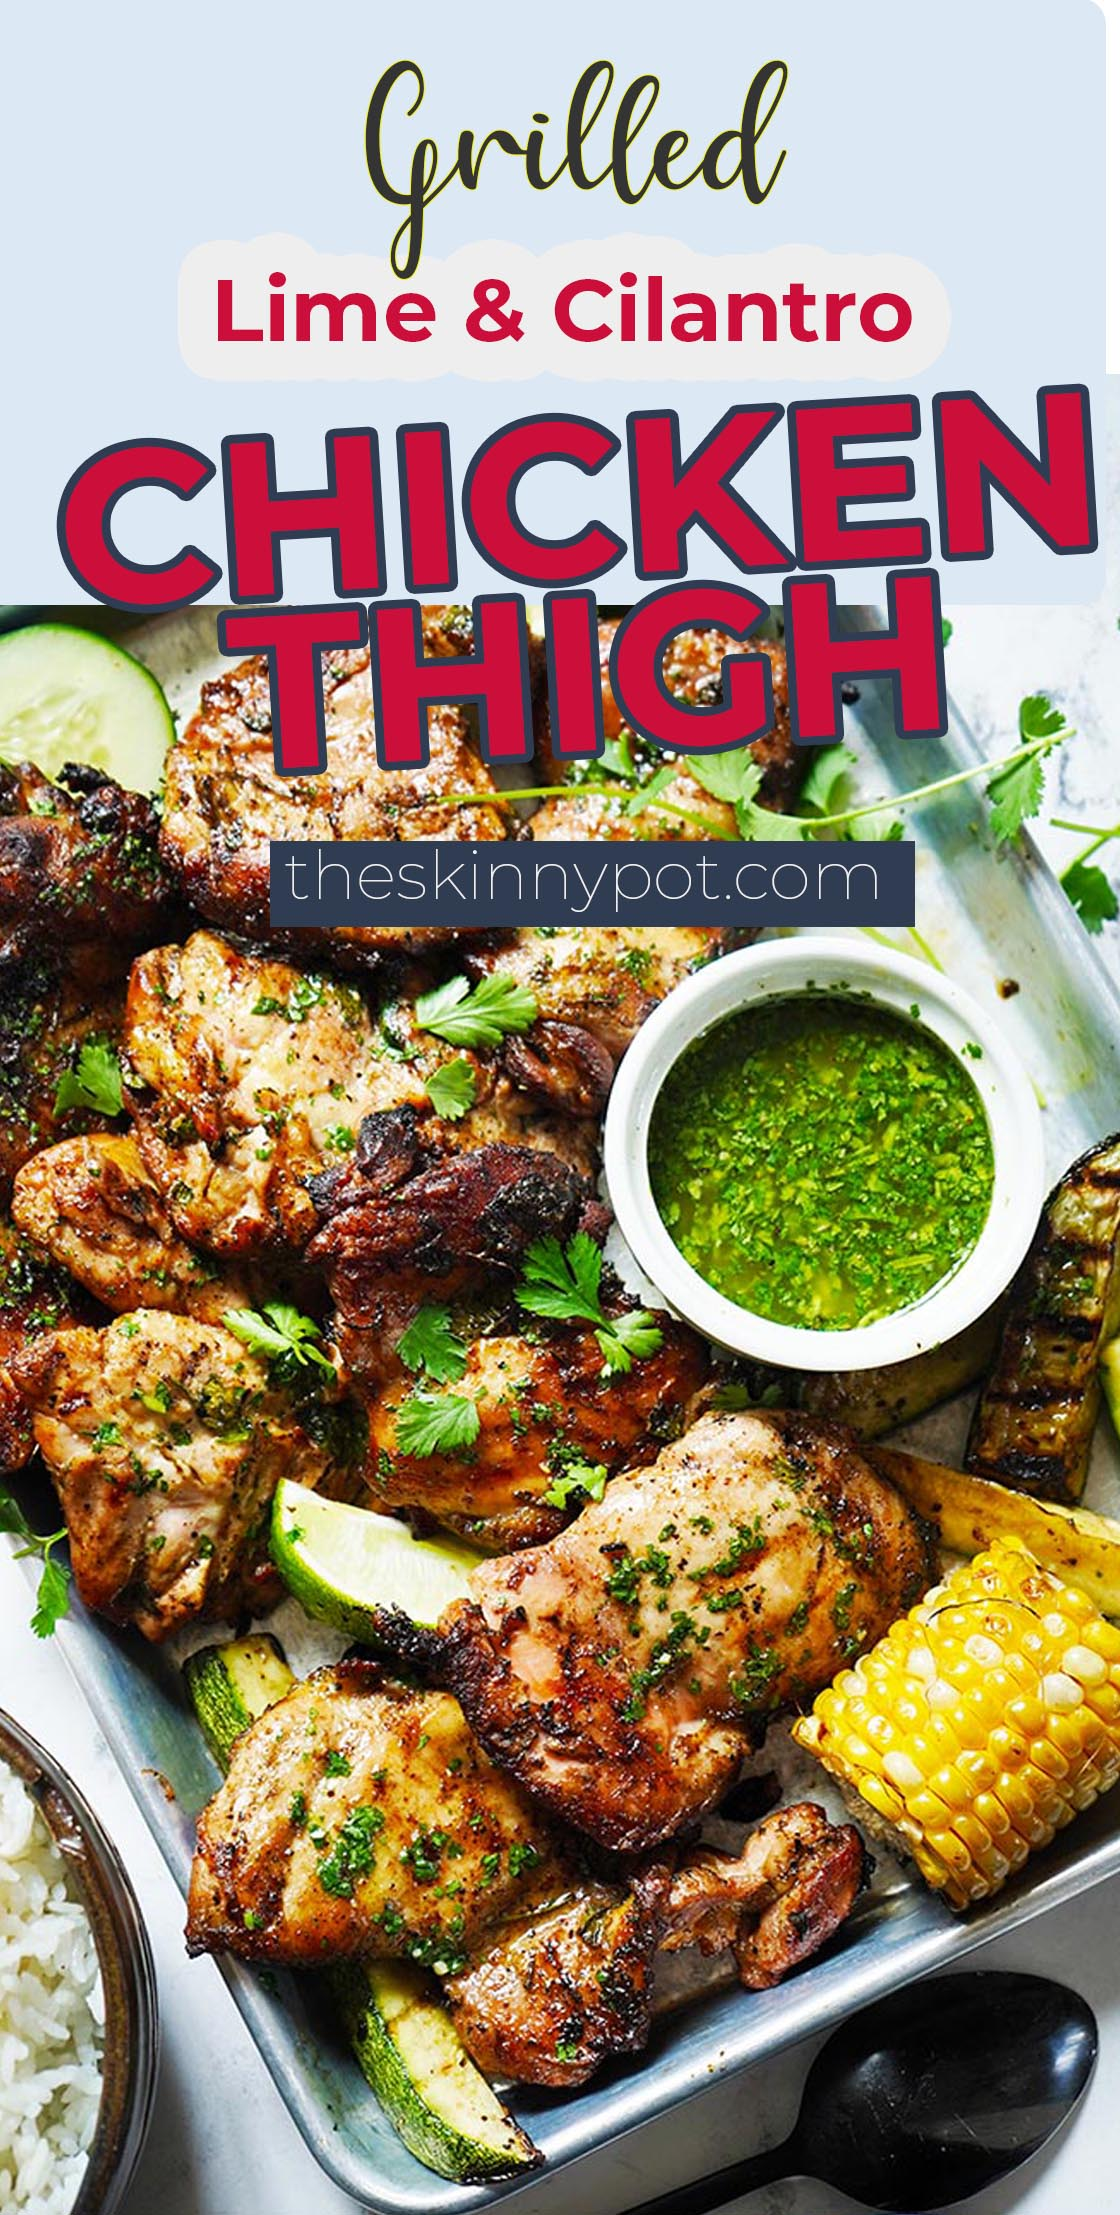 uicy Boneless Chicken thigh marinated in lime, cilantro, olive oil and spices. Grilled until inner meat temperature is 165 F. So moist and delicious. A crowd pleaser.